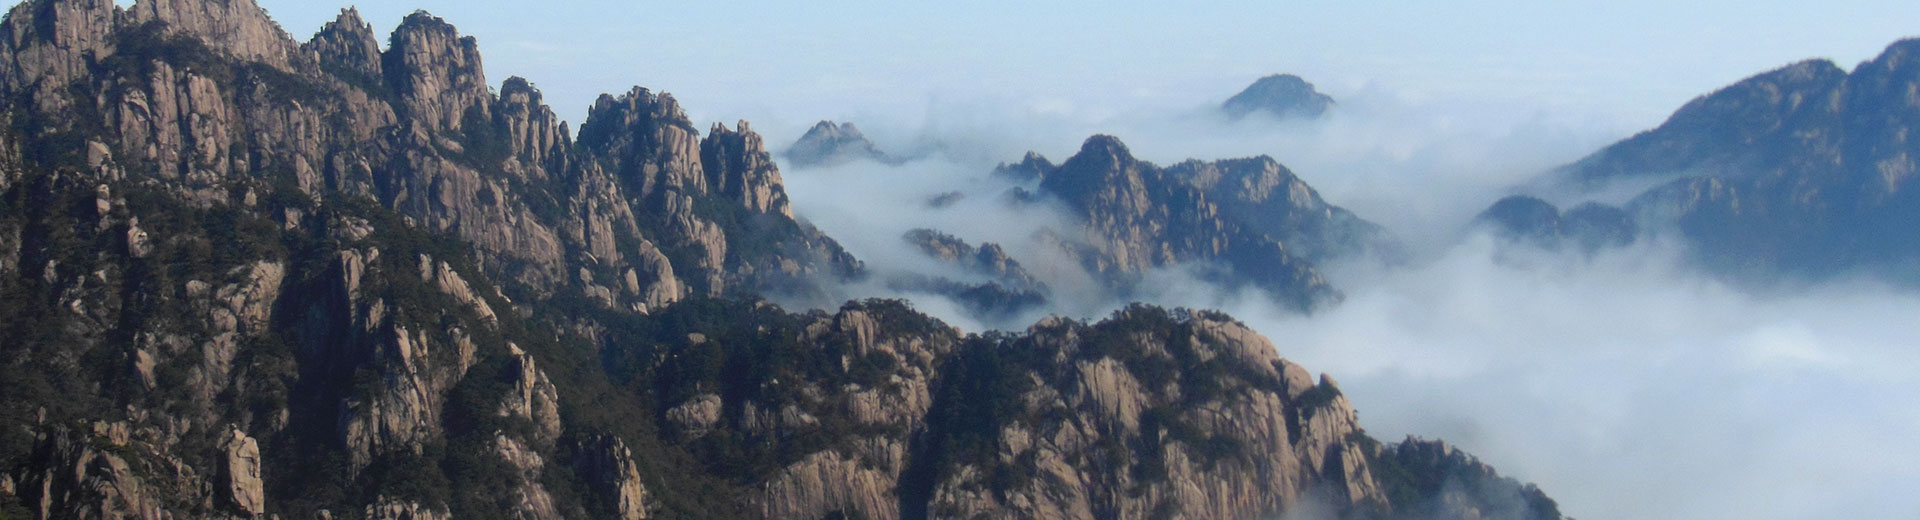 Visit China's Most Mesmerizing Mount Huangshan